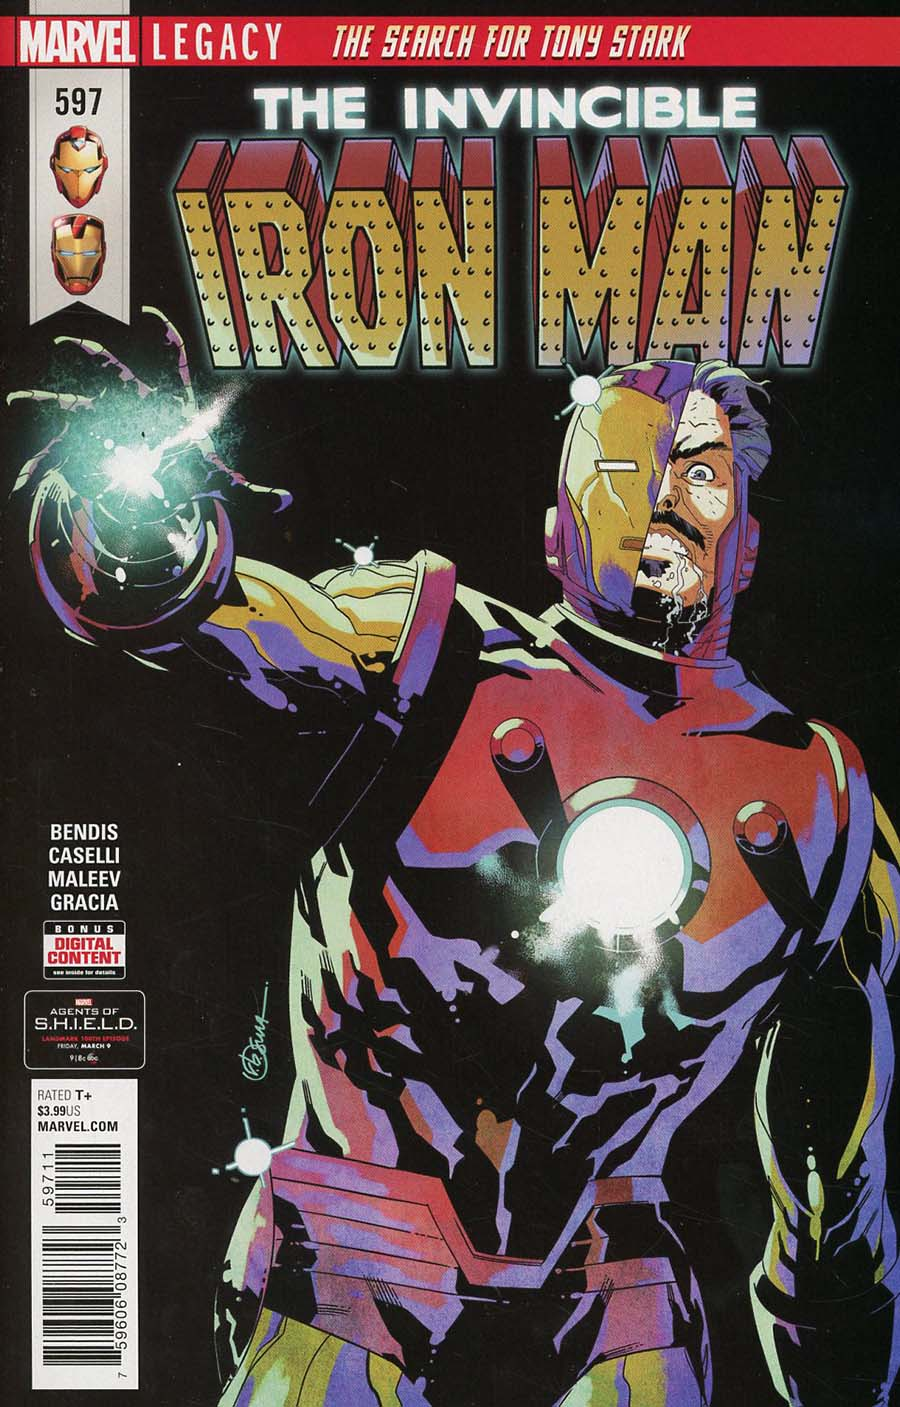 Invincible Iron Man Vol 3 #597 Cover A Regular RB Silva Cover (Marvel Legacy Tie-In)